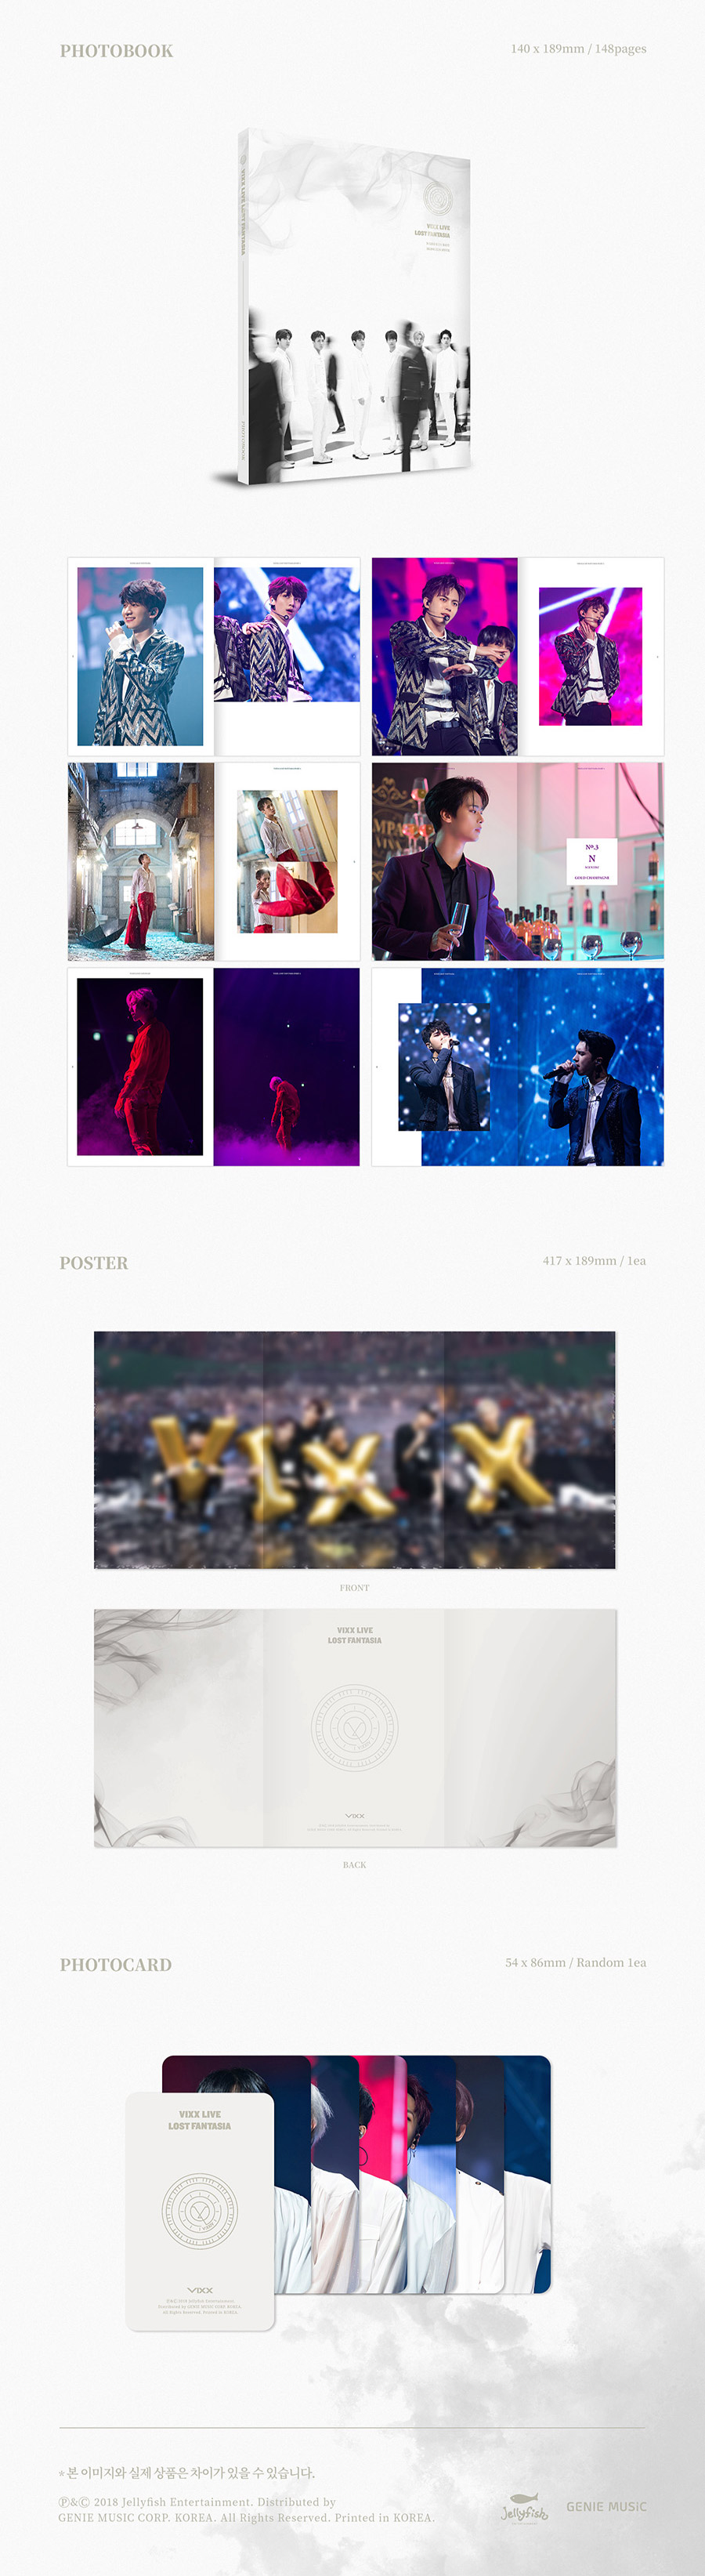 vixx_lostfantasia_dvd_02.jpg